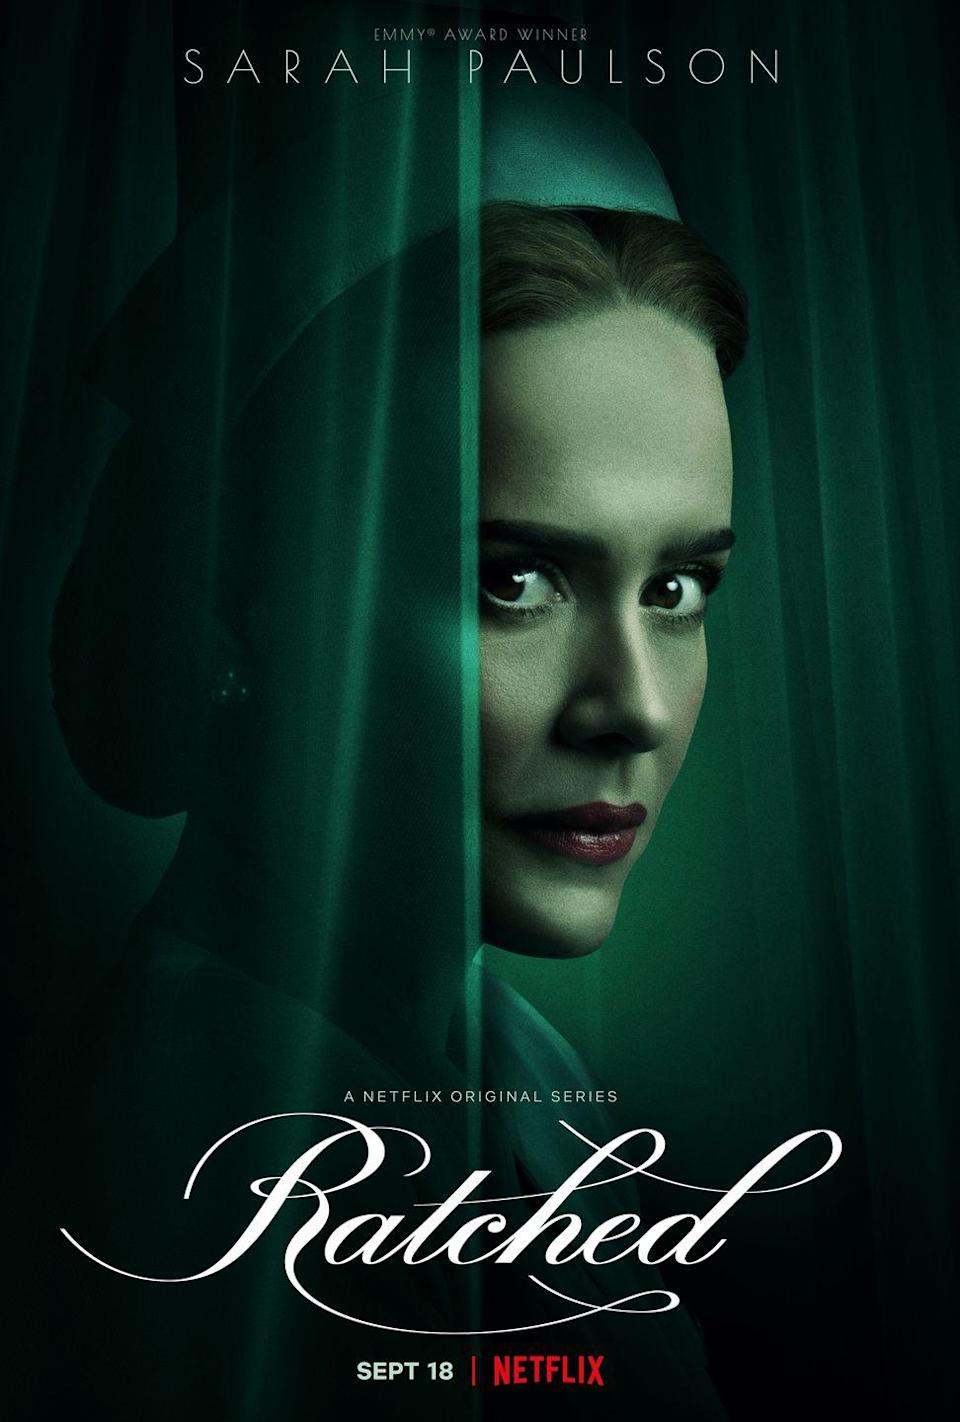 """<p><strong>Air date: </strong>2020-present on Netflix</p><p>Murphy featured player Sarah Paulson got an incredible showcase in the origin story for legendary <em>One Flew Over the Cuckoo's Nest </em>villain Nurse Ratched, which is set at an eerie Northern California psychiatric hospital in the late 1940s. Performances by Paulson and <a href=""""https://www.oprahdaily.com/entertainment/tv-movies/a34058967/cynthia-nixon-ratched-interview/"""" rel=""""nofollow noopener"""" target=""""_blank"""" data-ylk=""""slk:Cynthia Nixon"""" class=""""link rapid-noclick-resp"""">Cynthia Nixon</a> have been justly praised, and a second season of the unnerving drama is <a href=""""https://www.oprahdaily.com/entertainment/a34045518/ratched-season-2-release-date-cast-news/"""" rel=""""nofollow noopener"""" target=""""_blank"""" data-ylk=""""slk:in the works"""" class=""""link rapid-noclick-resp"""">in the works</a>.</p><p>Murphy did not write on <em>Ratched</em>, though he directed a pair of episodes. He is credited with having developed the show alongside Evan Romansky.<br><br></p><p><a class=""""link rapid-noclick-resp"""" href=""""https://www.netflix.com/title/80213445"""" rel=""""nofollow noopener"""" target=""""_blank"""" data-ylk=""""slk:WATCH NOW"""">WATCH NOW</a></p>"""